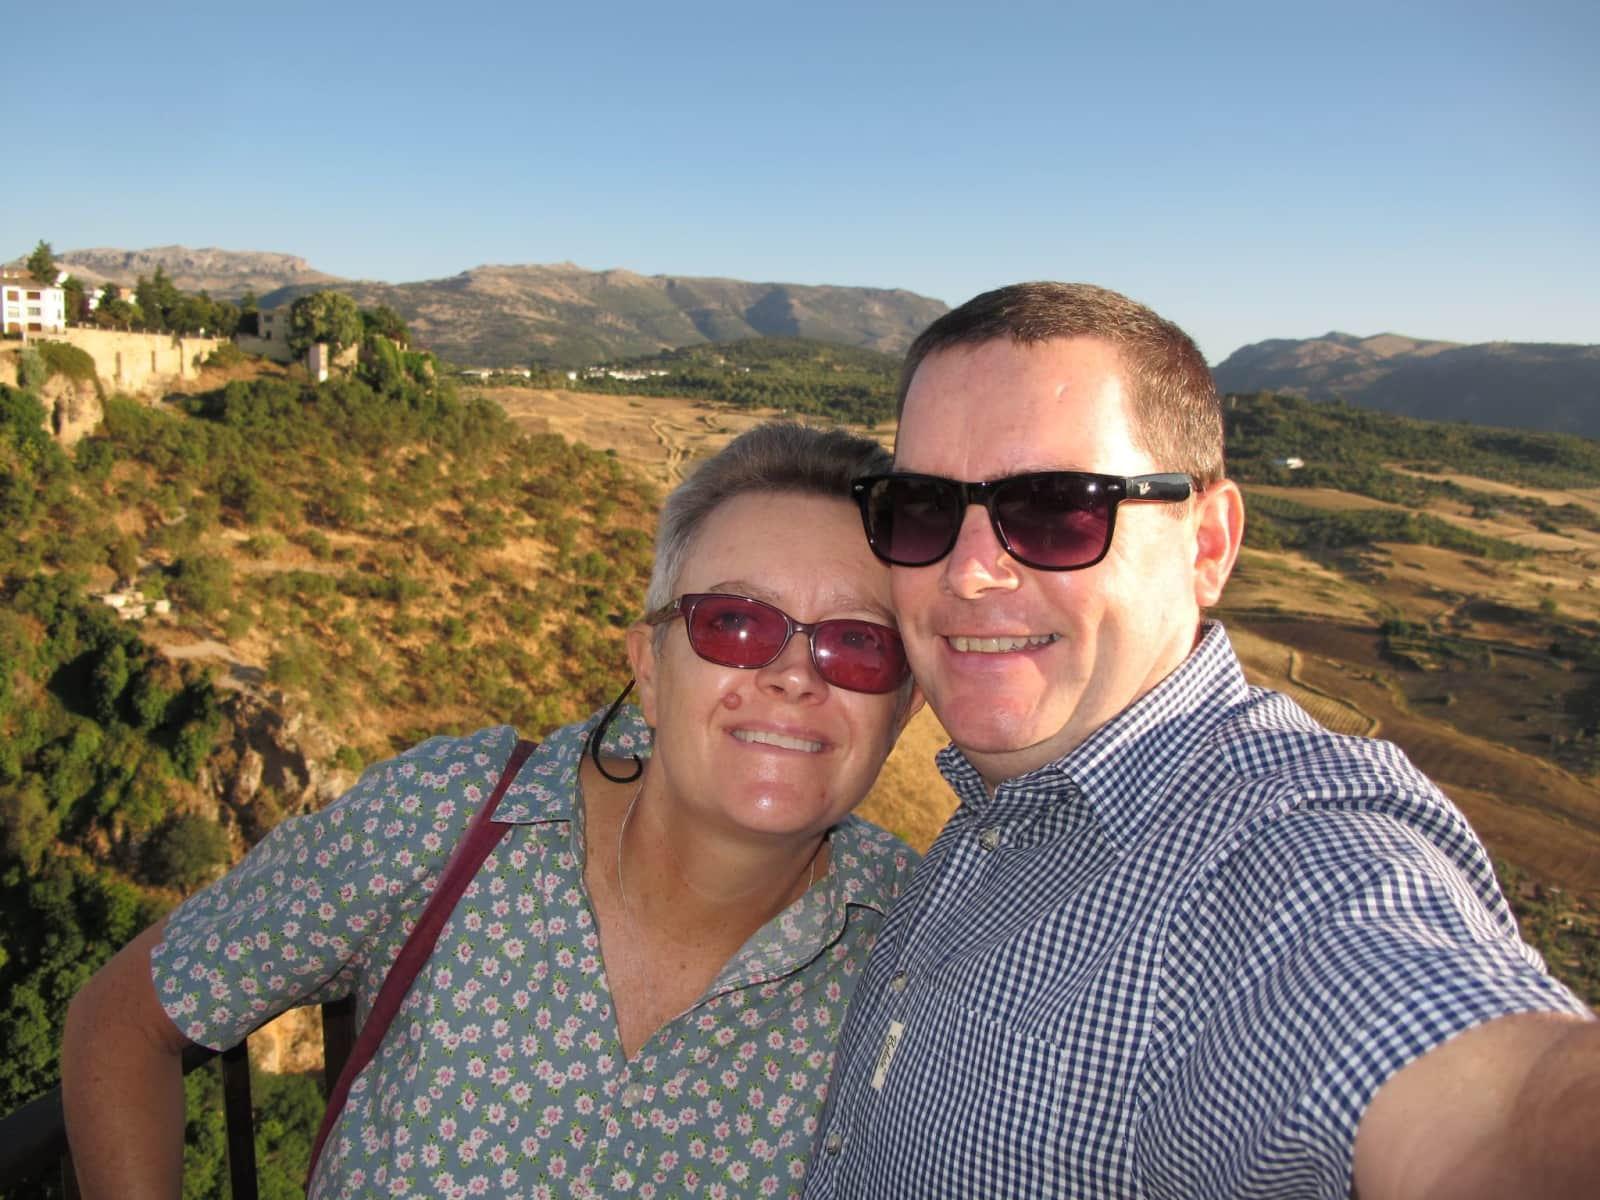 Russ & Trish from Guardamar del Segura, Spain